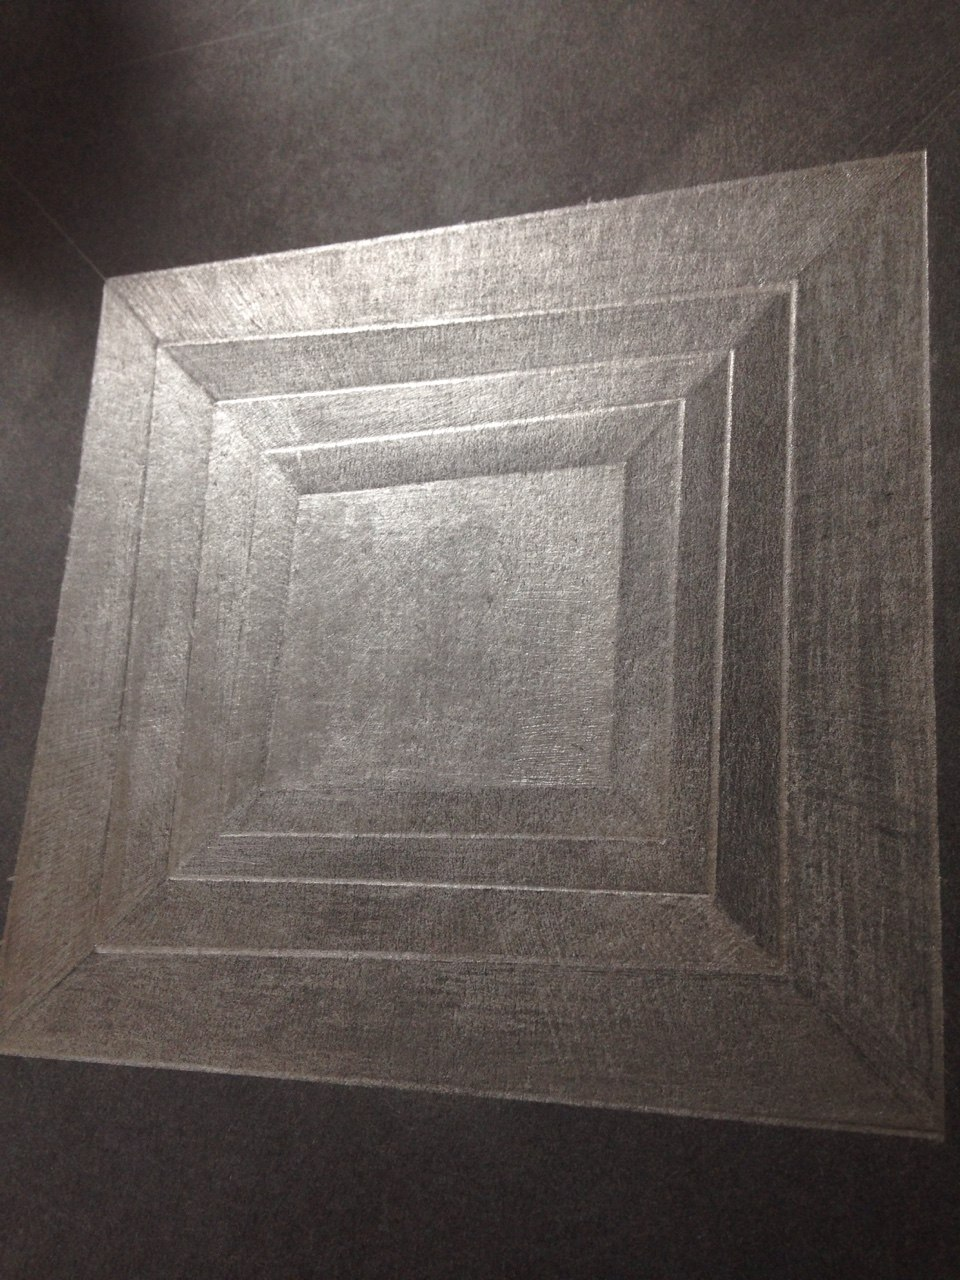 Vault, graphite drawing, A3, 2017